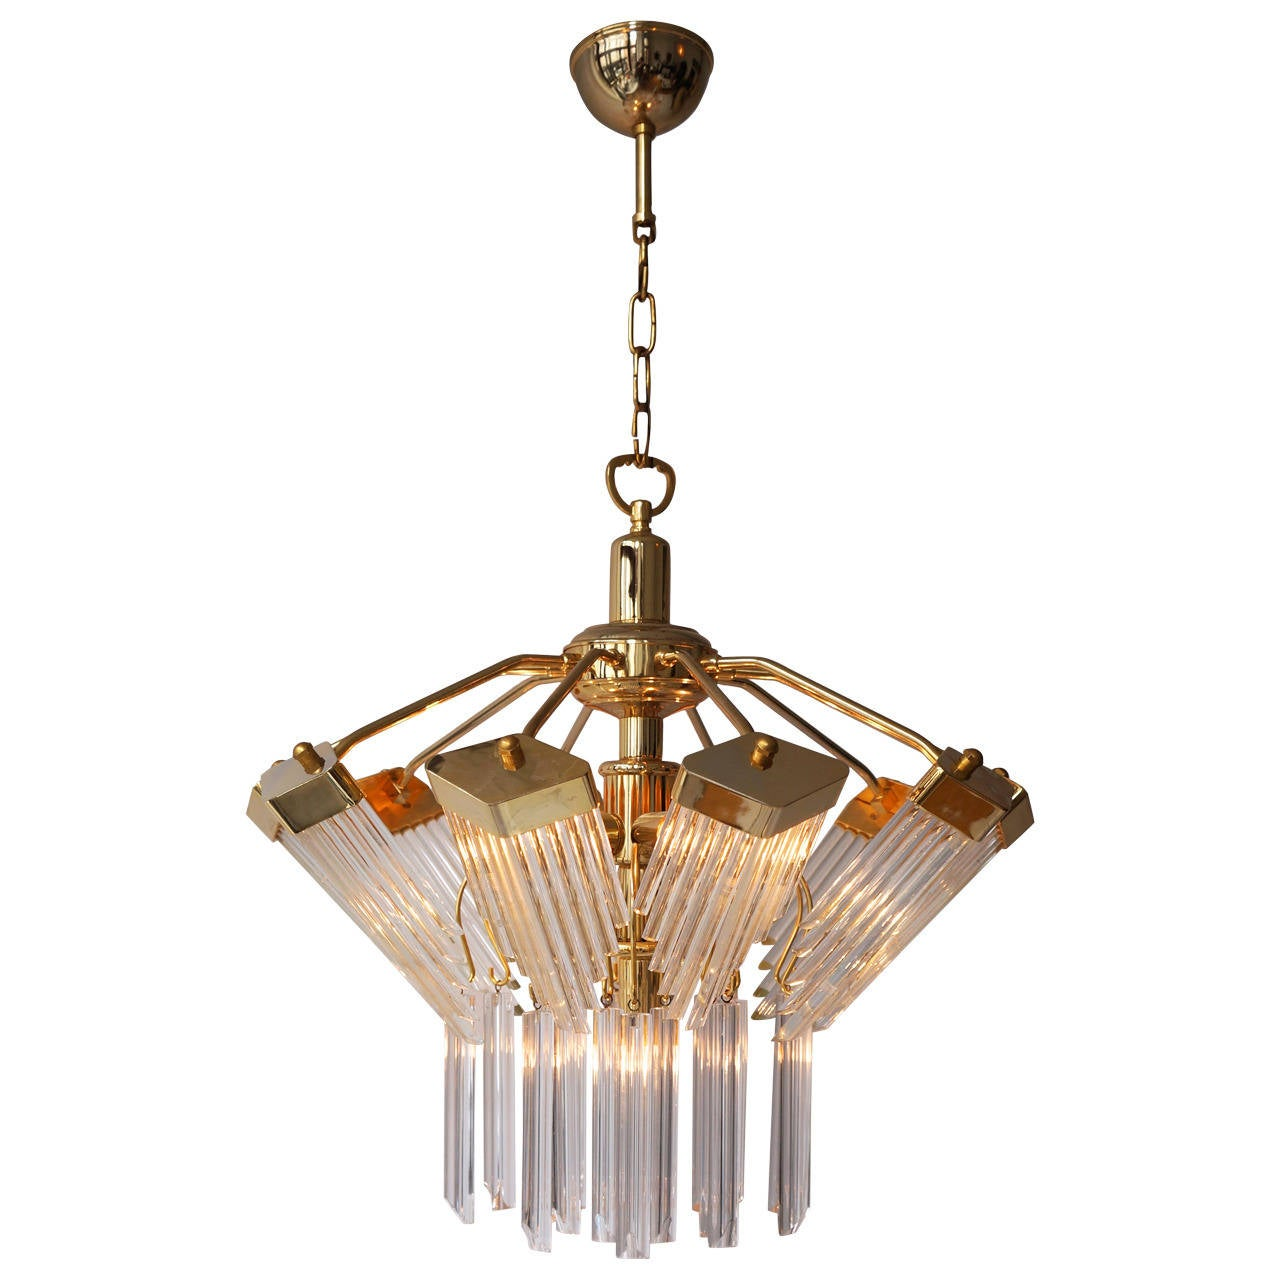 Bakalowits Gold Plated Crystal Chandelier For Sale At 1stdibs